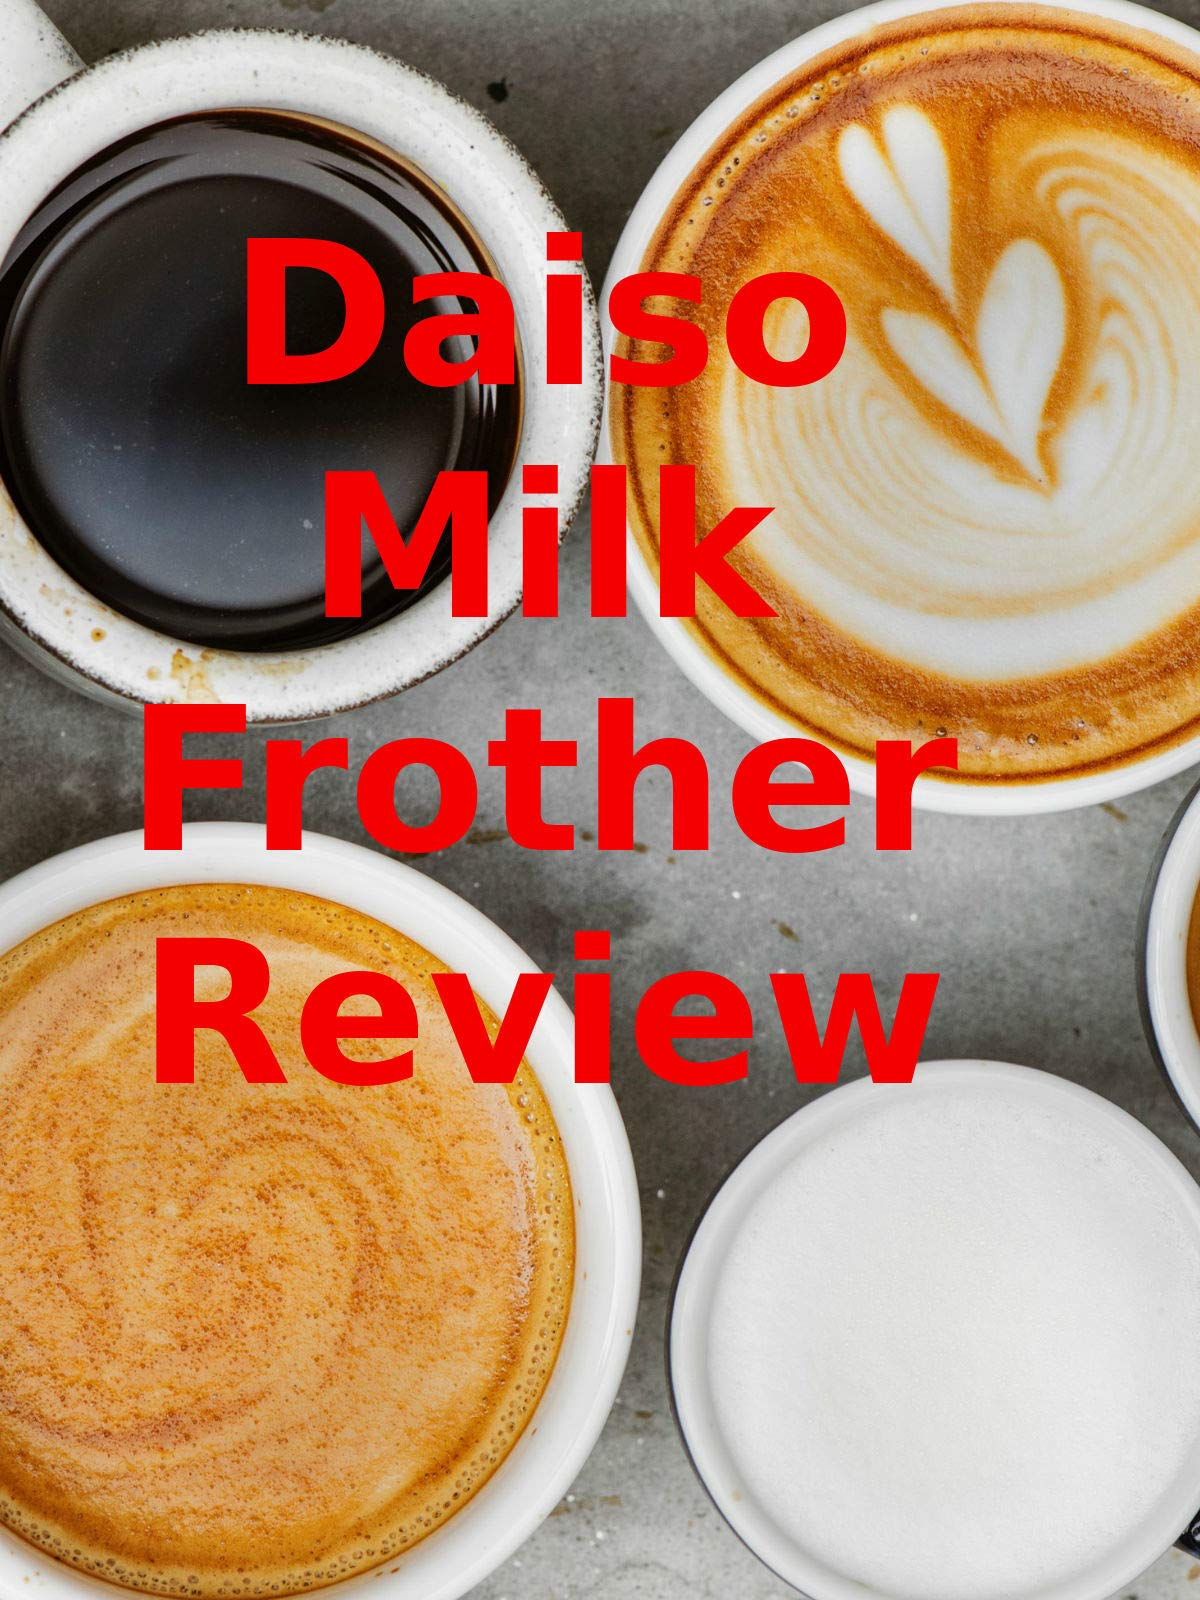 Review: Daiso Milk Frother Review on Amazon Prime Video UK